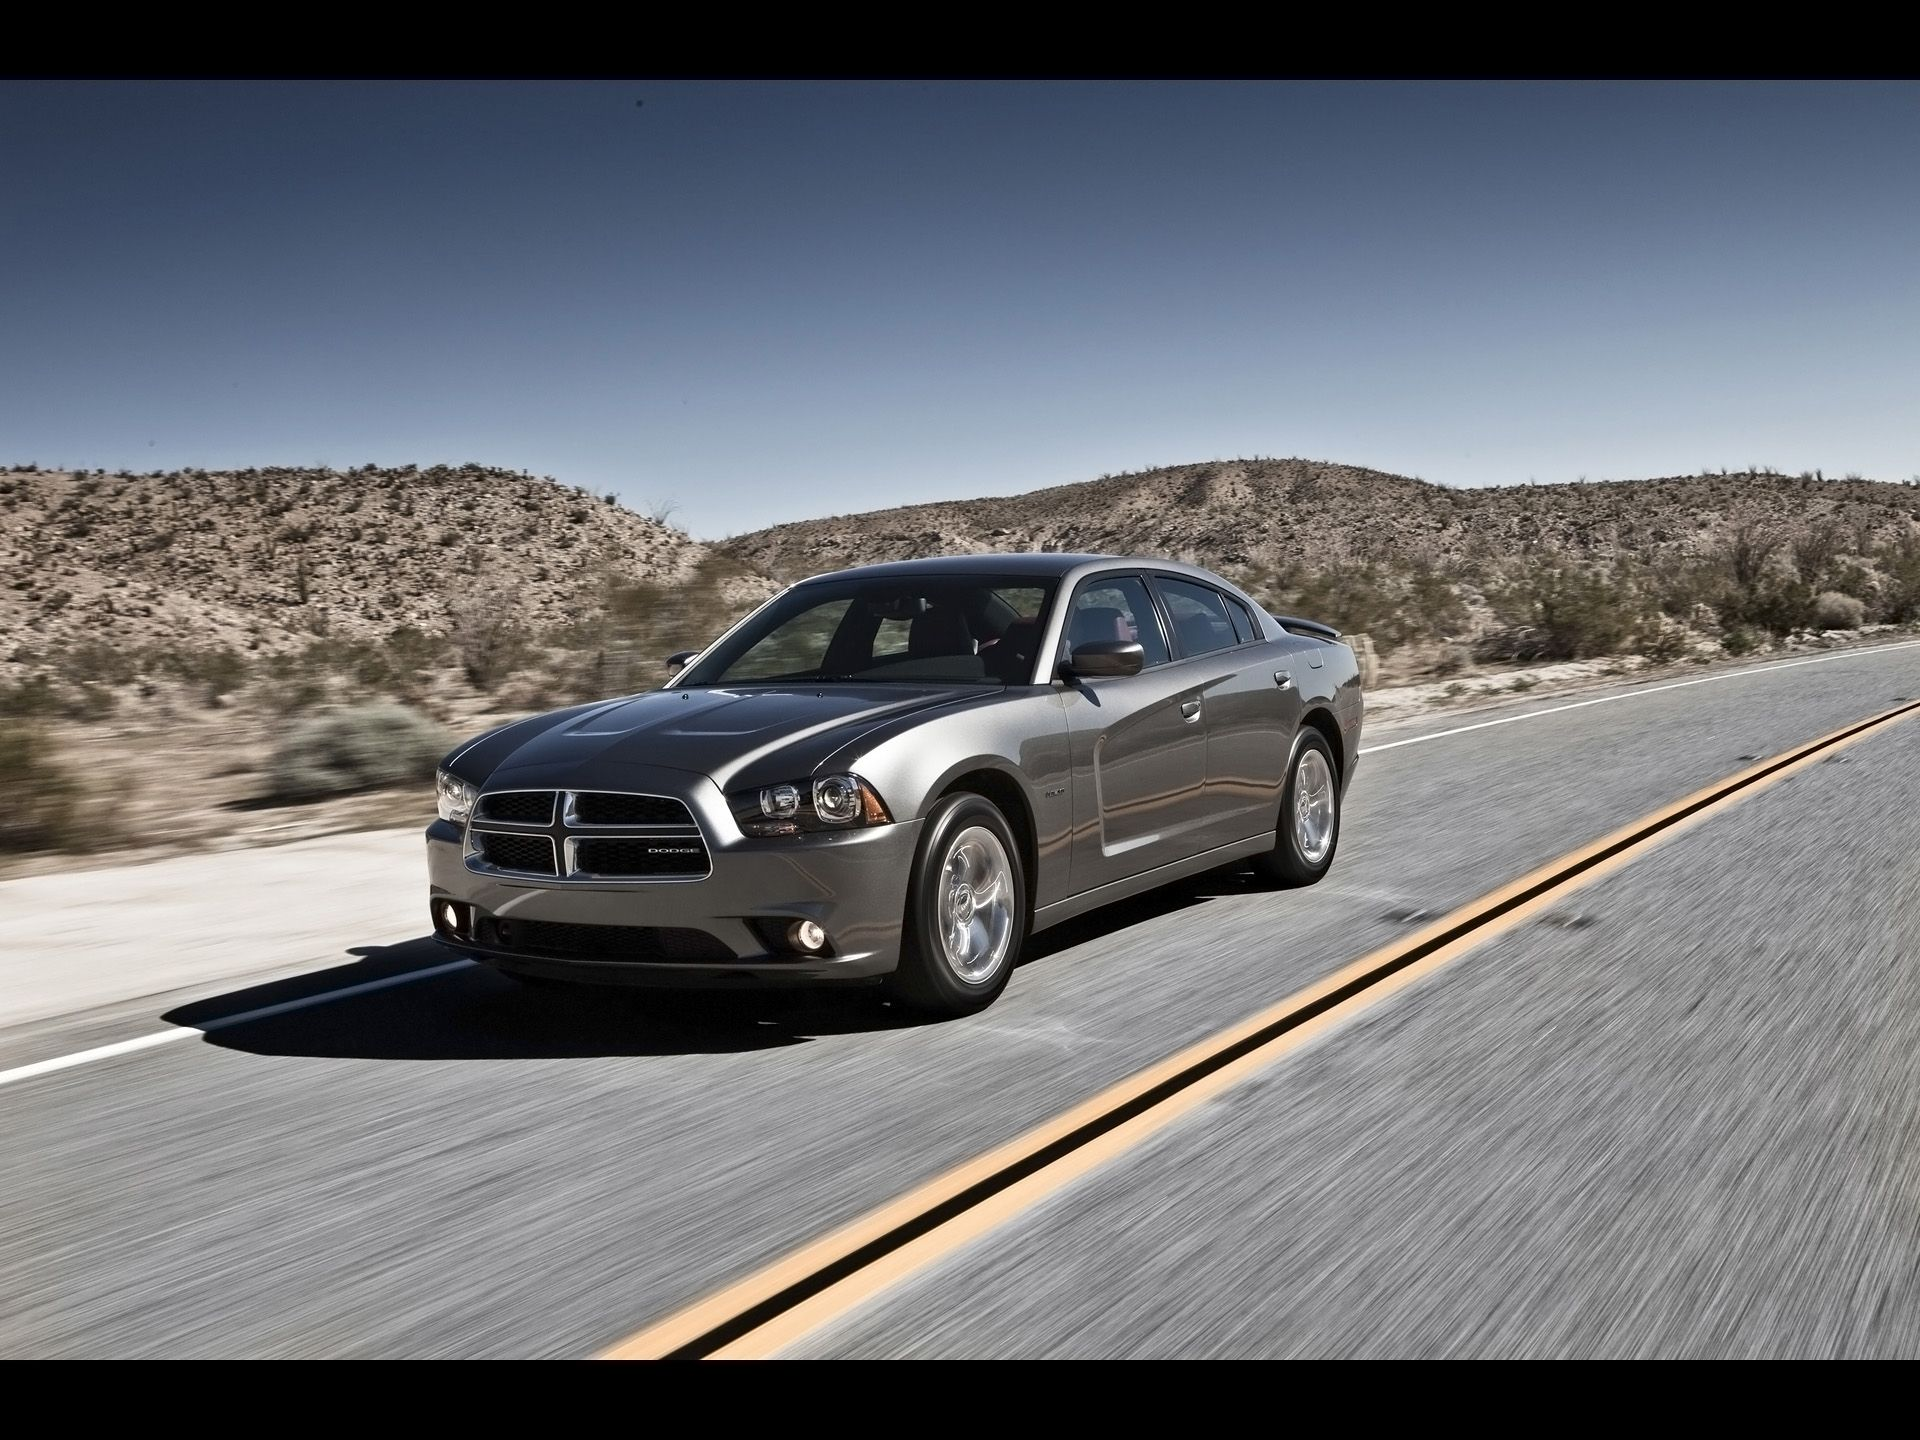 2012 dodge charger rt front angle speed